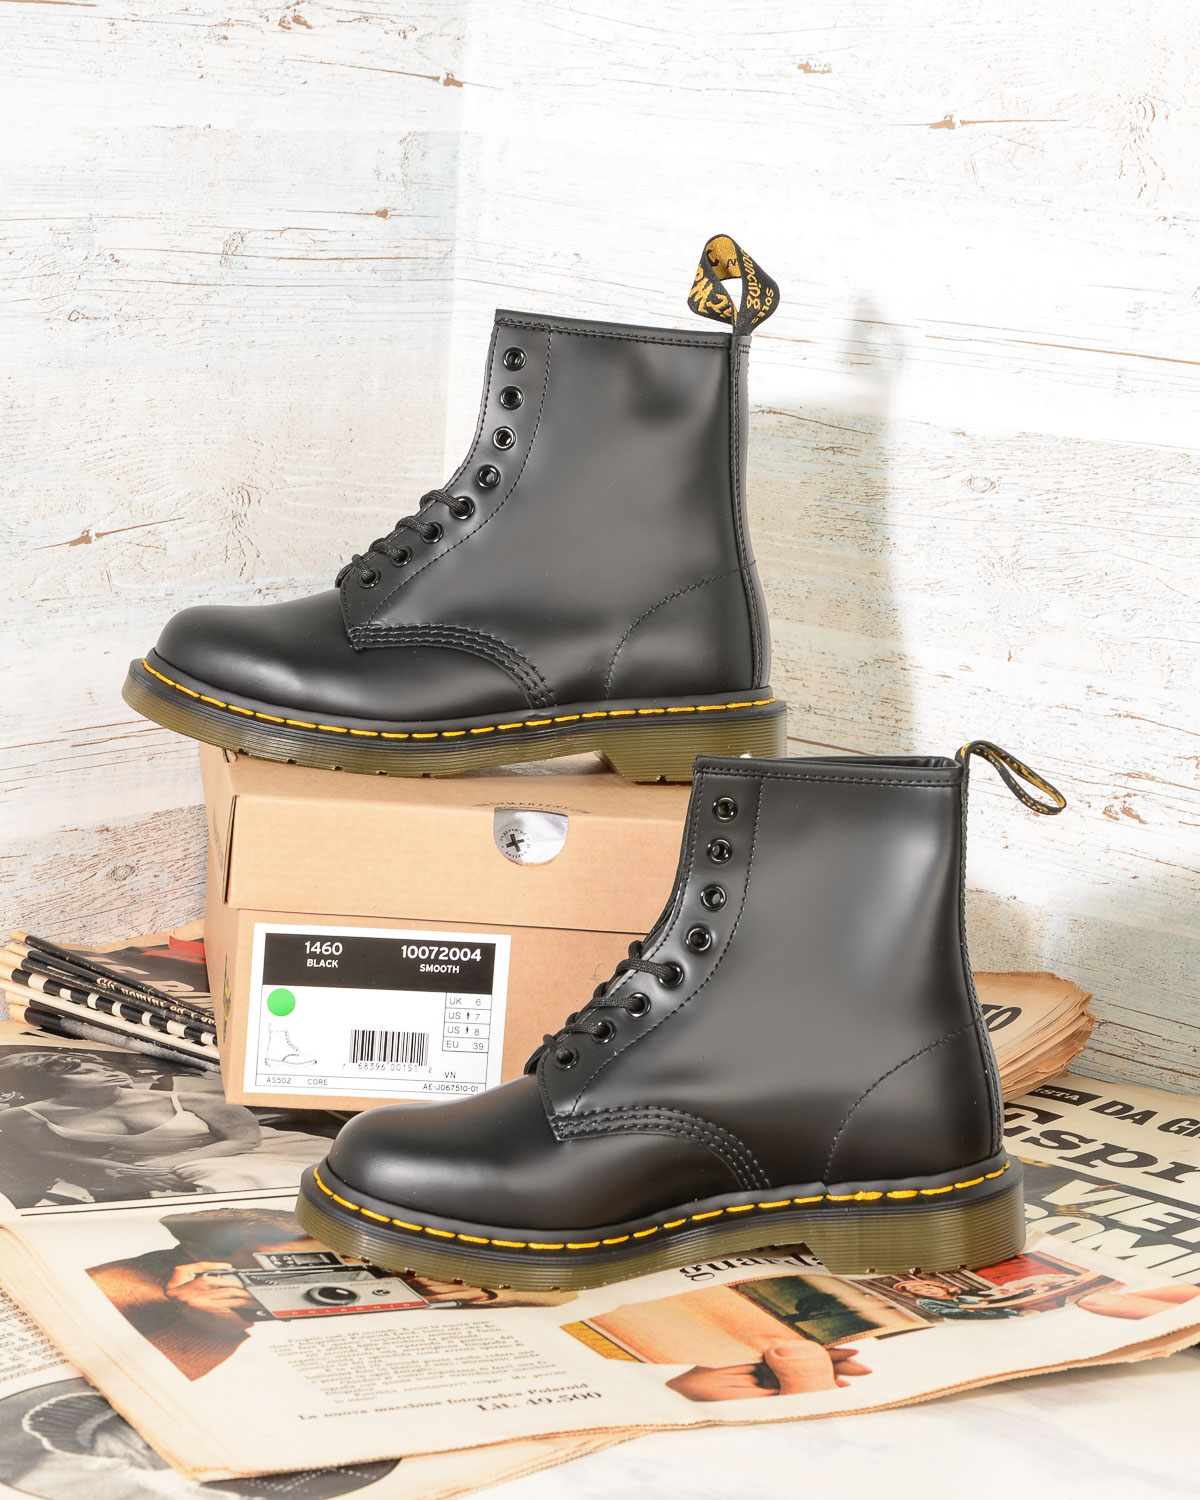 Abituale elegante Grazie  dr martens 1460 smooth black 42 Online Shopping for Women, Men, Kids  Fashion & Lifestyle|Free Delivery & Returns